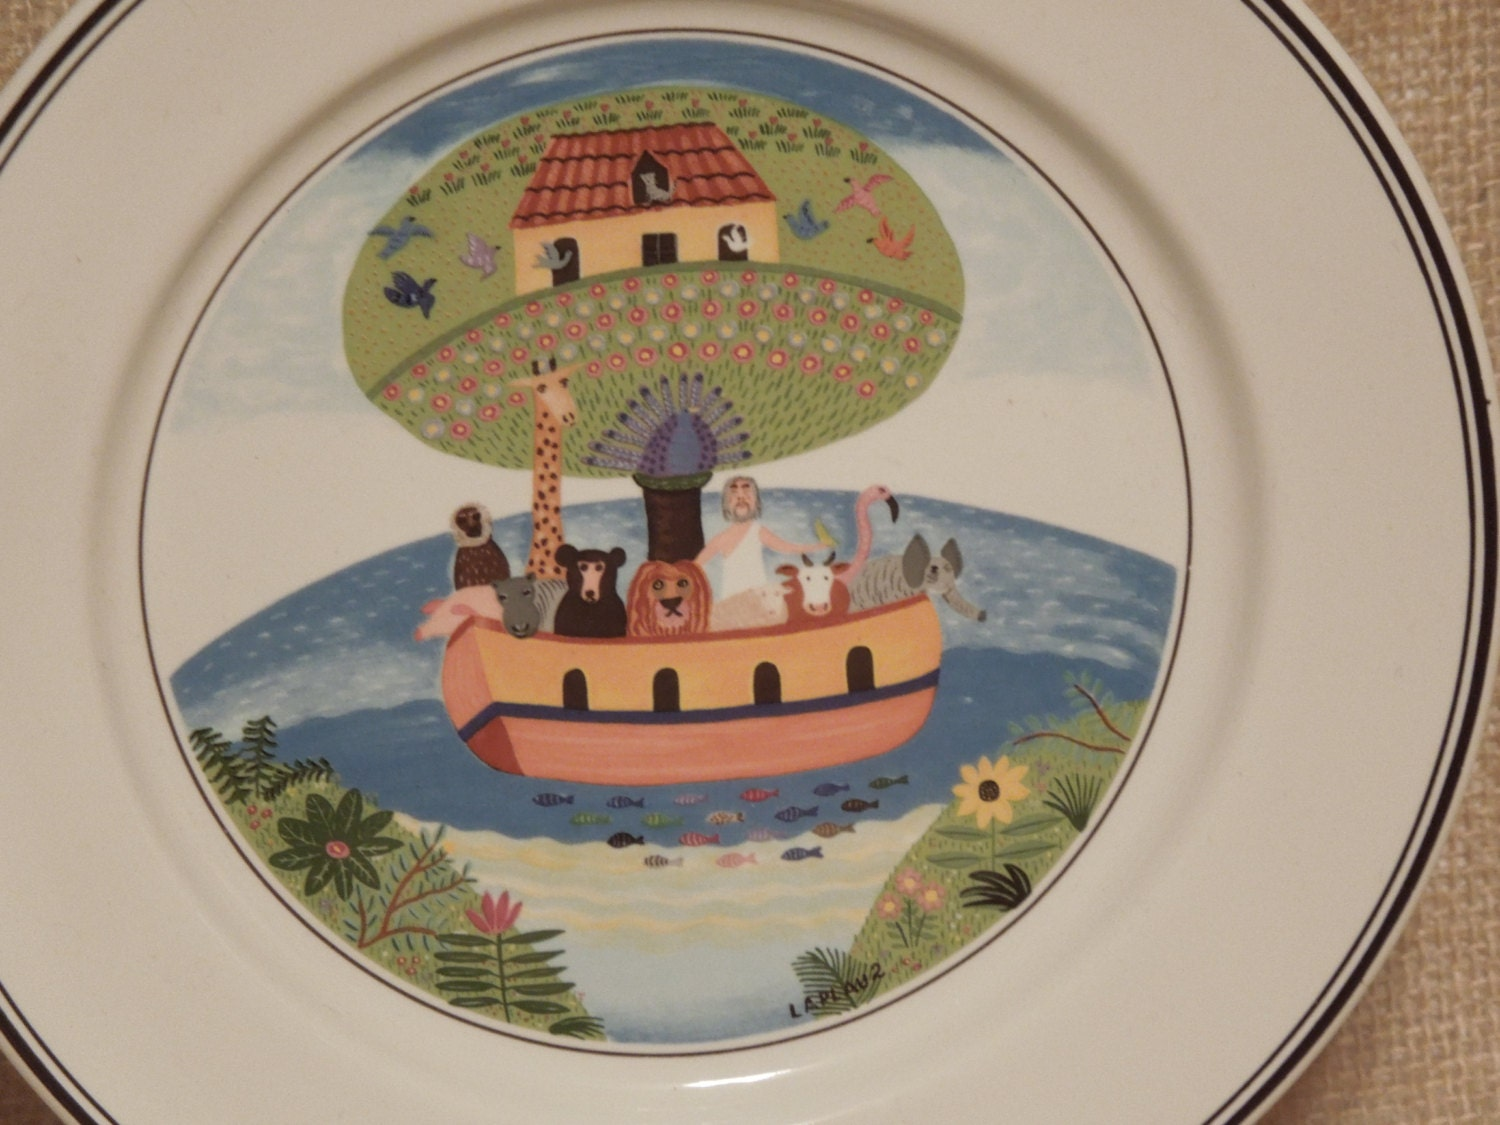 Vintage villeroy and boch collectible plate design naif for Villeroy and boch plates